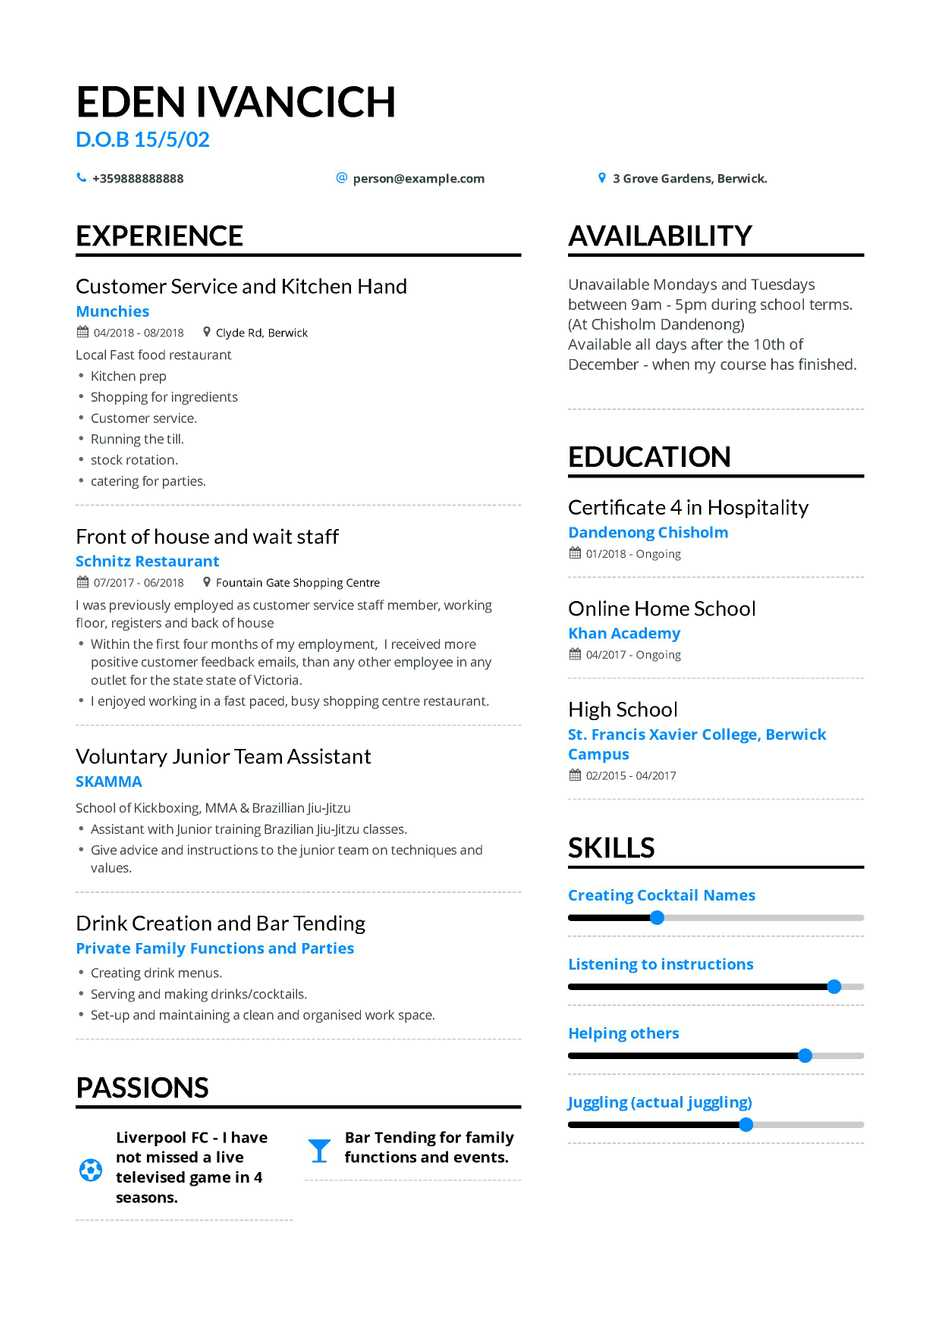 High School Resume Resume Examples For Teens high school resume|wikiresume.com